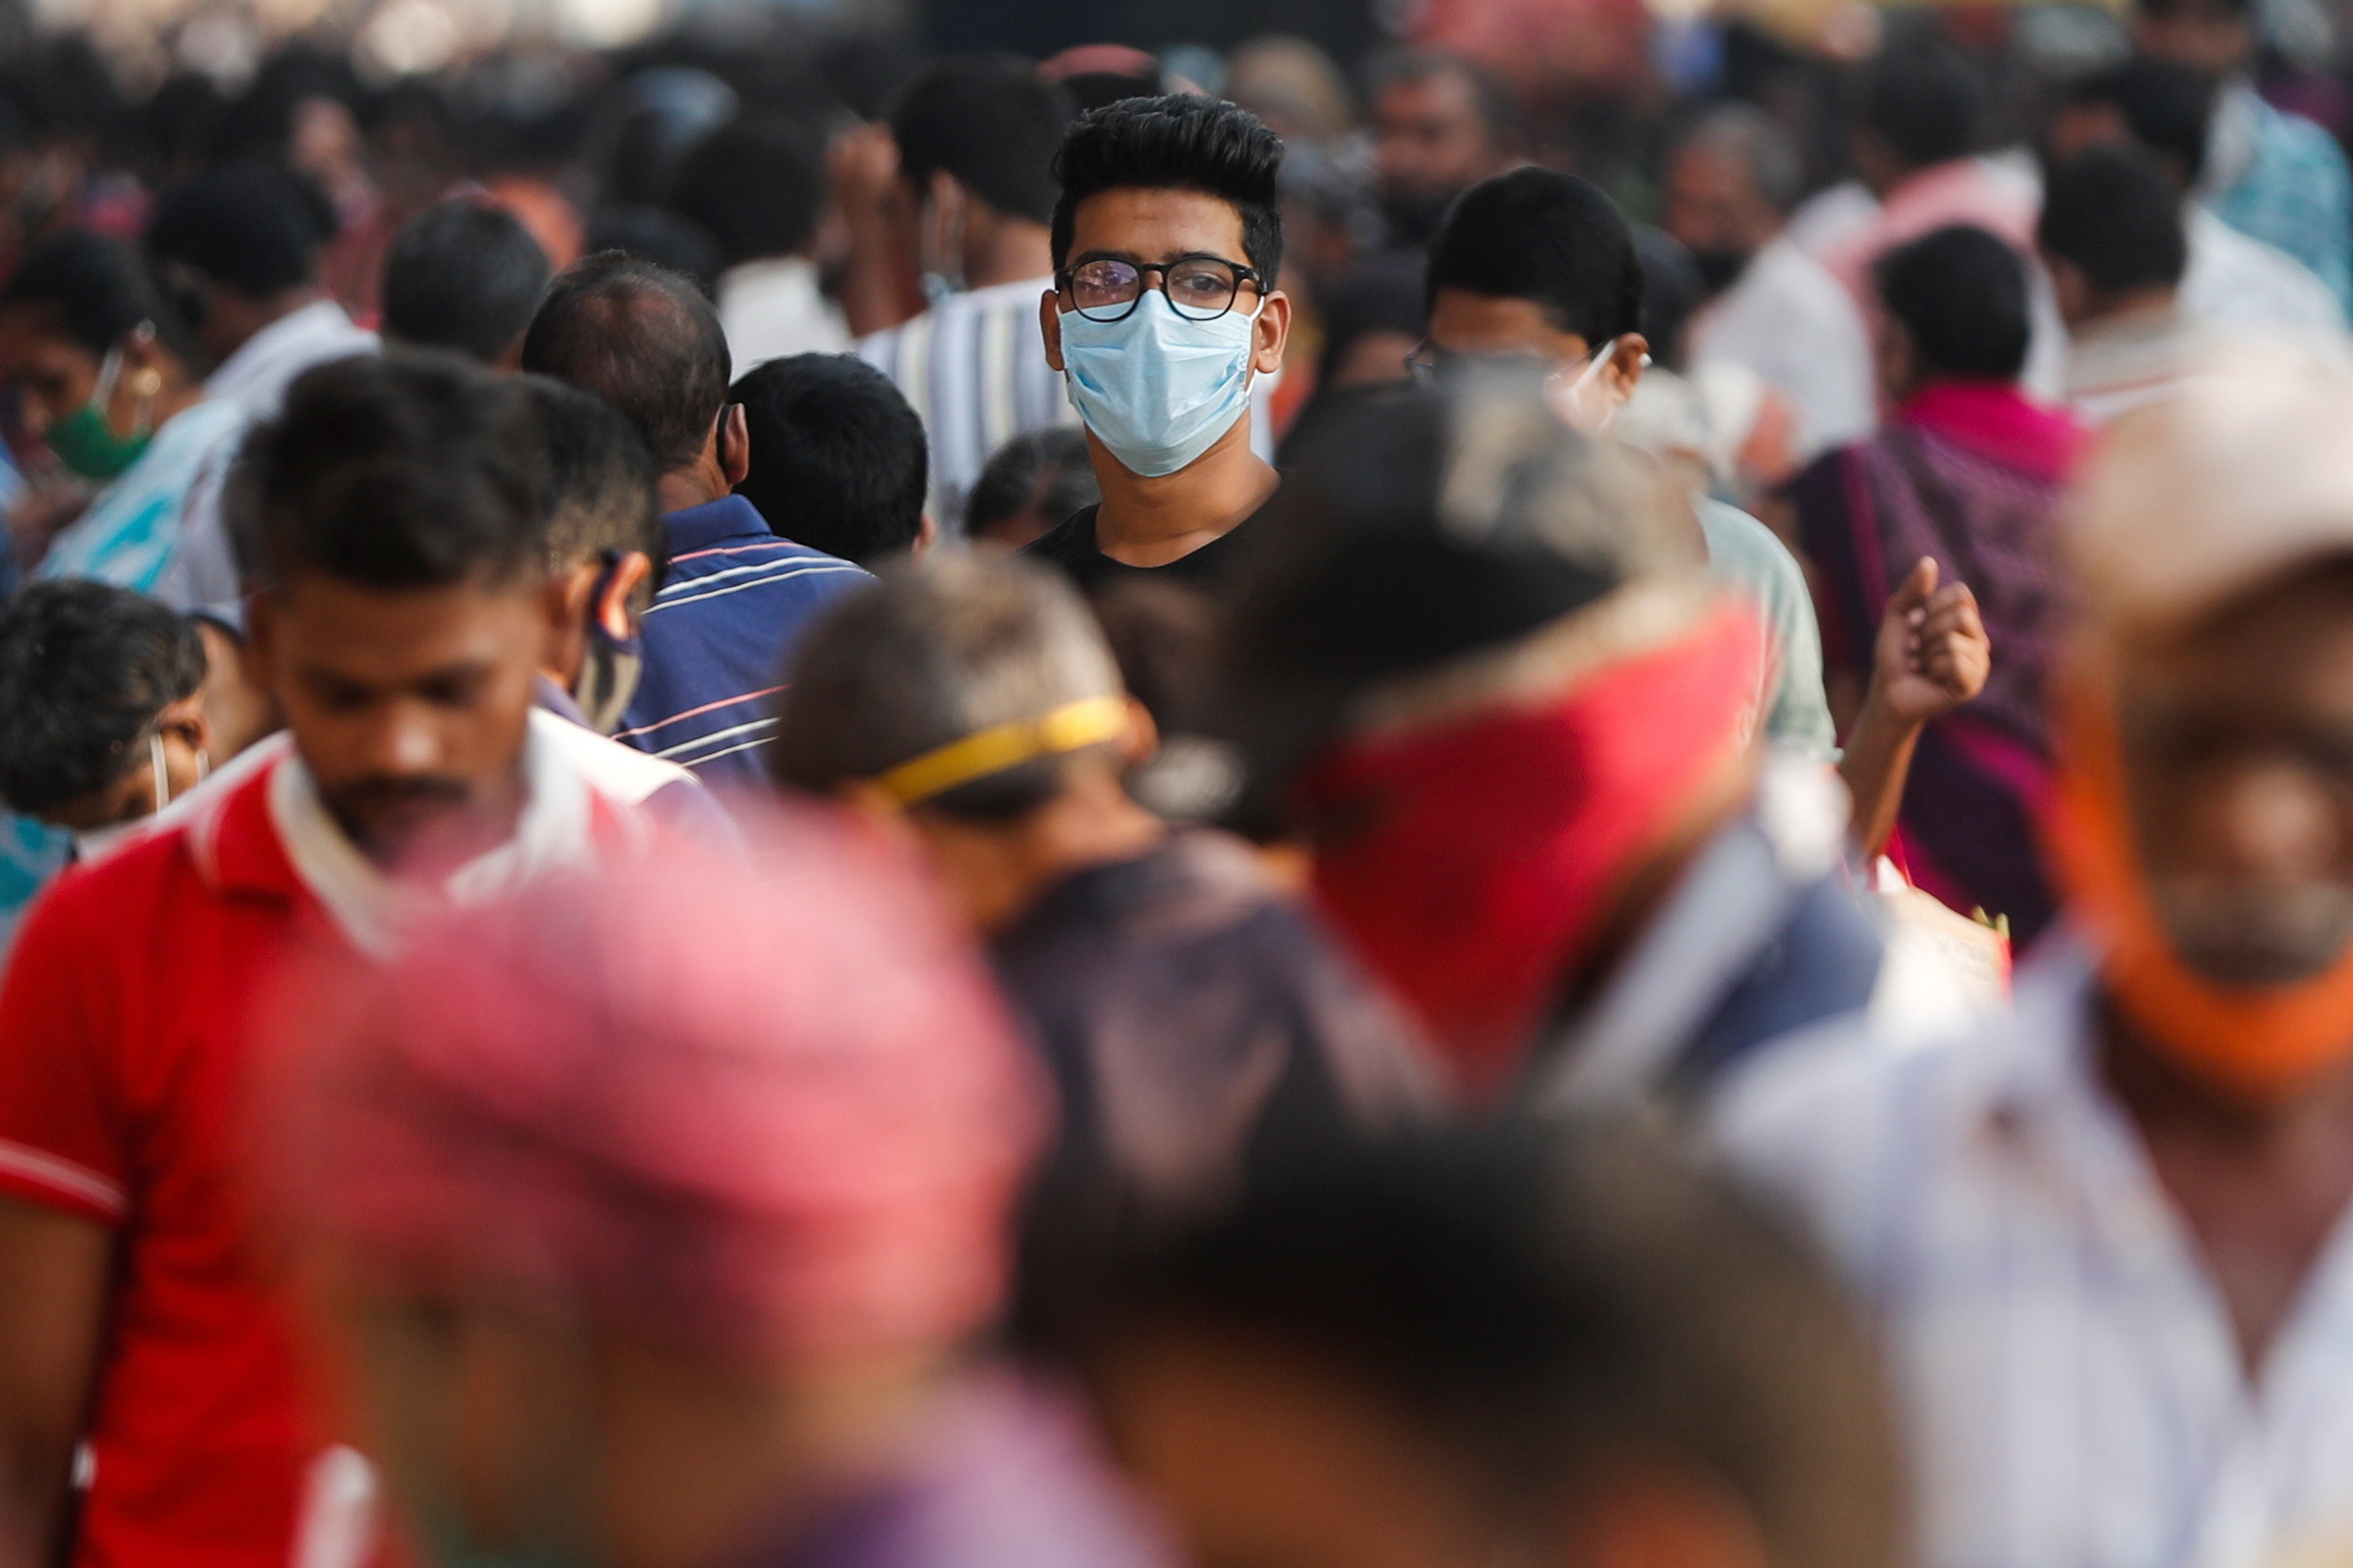 A man wearing a protective mask is seen among people at a crowded market amidst the spread of the coronavirus disease (COVID-19) in Mumbai, India, October 29, 2020. REUTERS/Francis Mascarenhas - RC24SJ9M7M7C